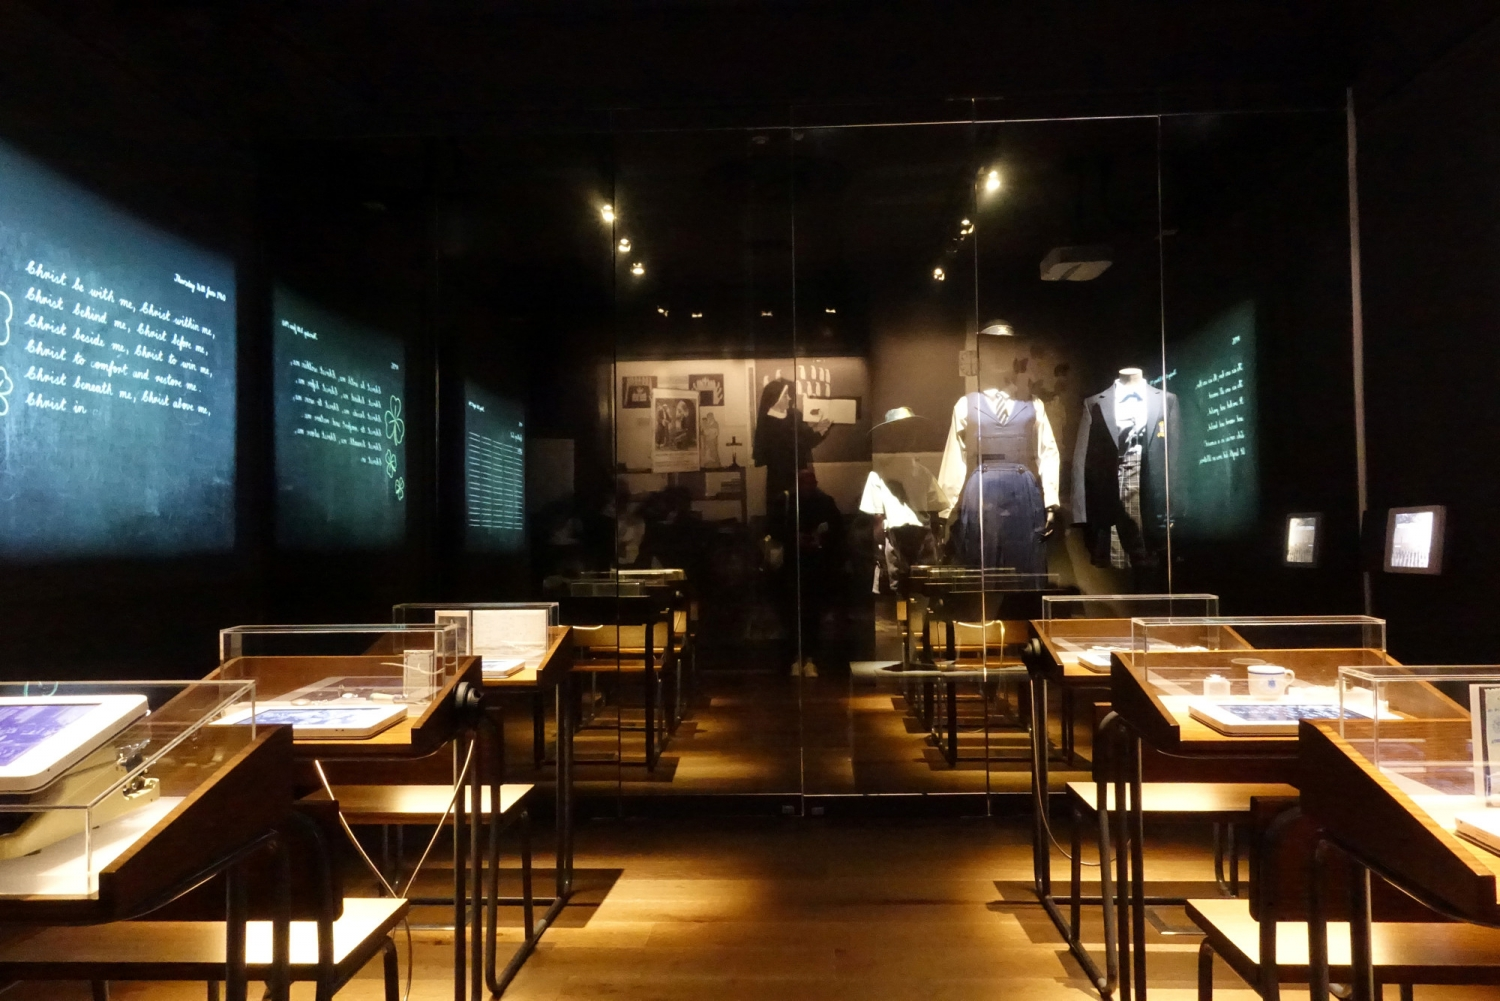 Photograph showing the 'Education Room' one of the exhibition spaces as part of the Monte Mercies Story at Stormanston House.